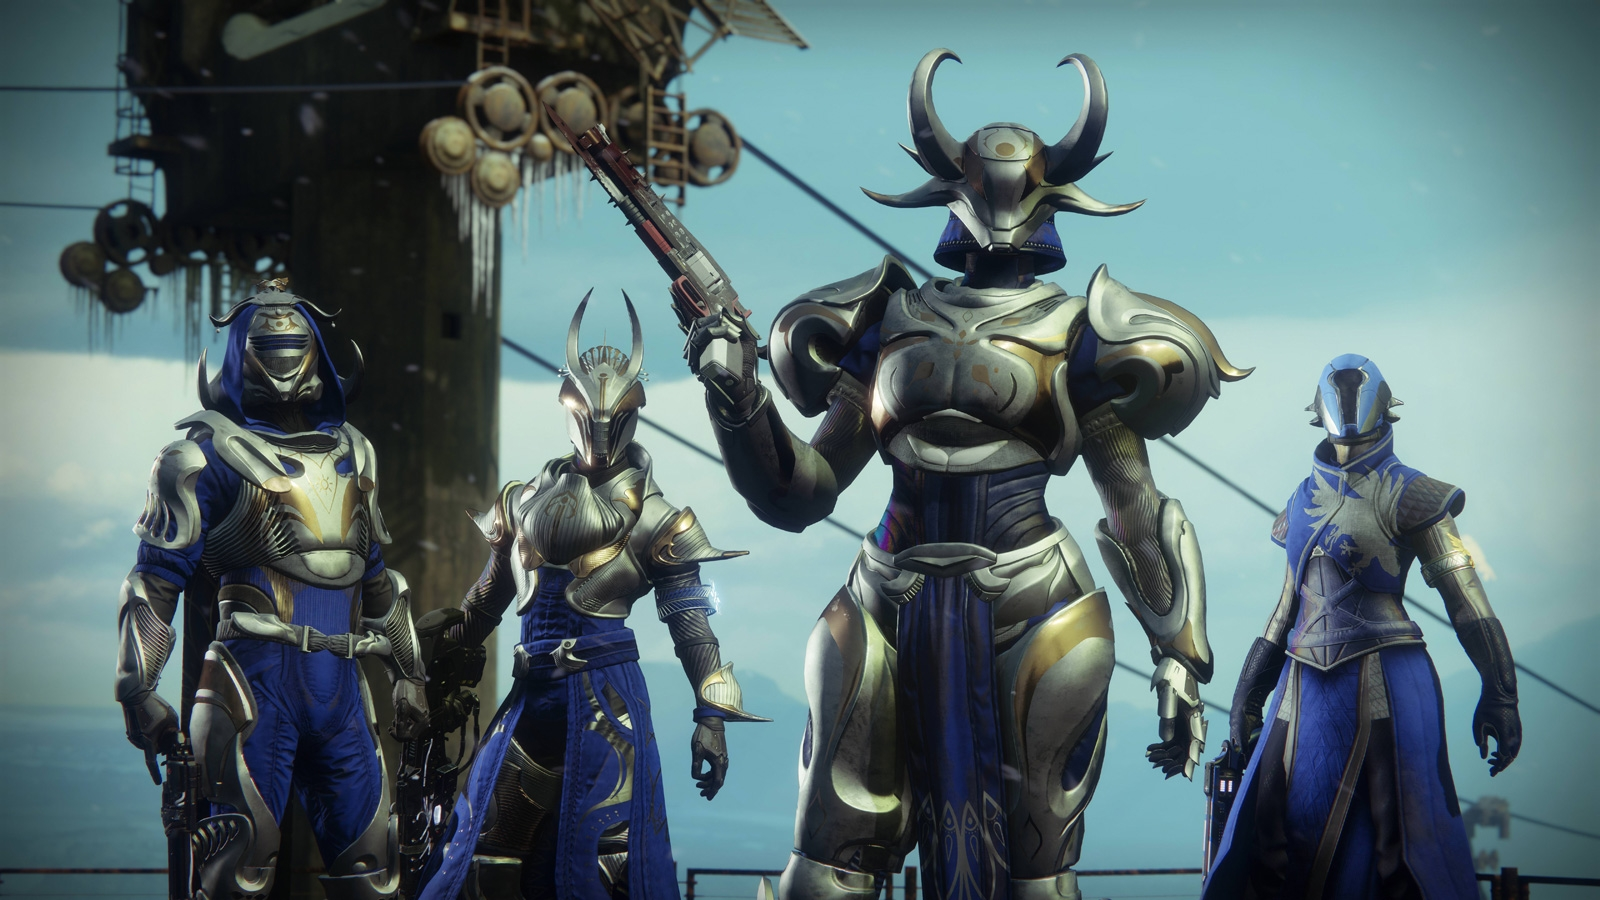 Hard-to-get 'Destiny 2' holiday loot creates another uproar | DeviceDaily.com